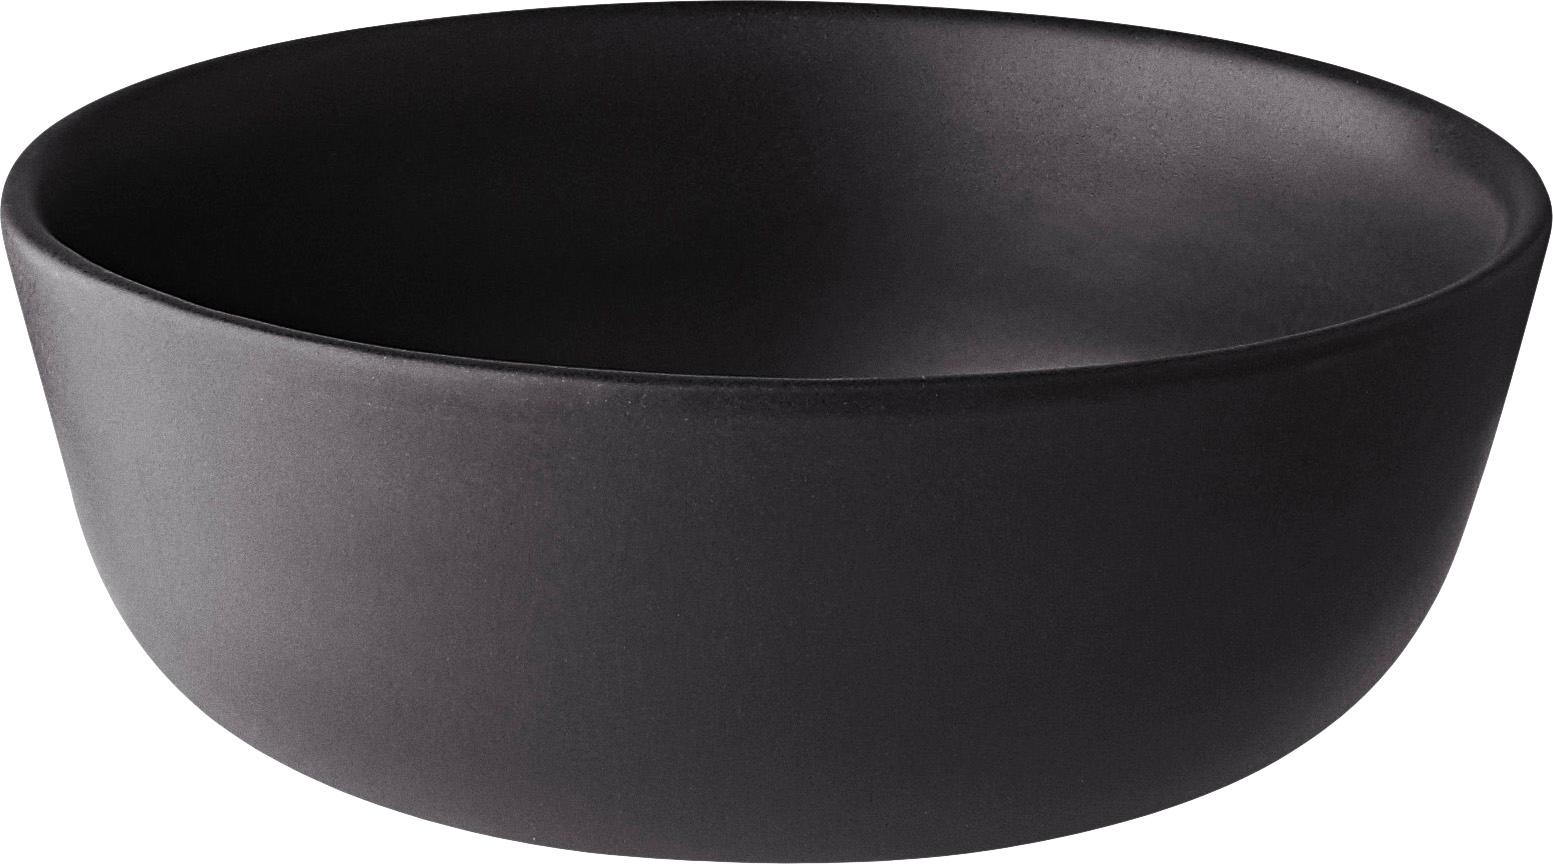 Cuencos Nordic Kitchen, 4 uds., Gres, Negro, 400 ml